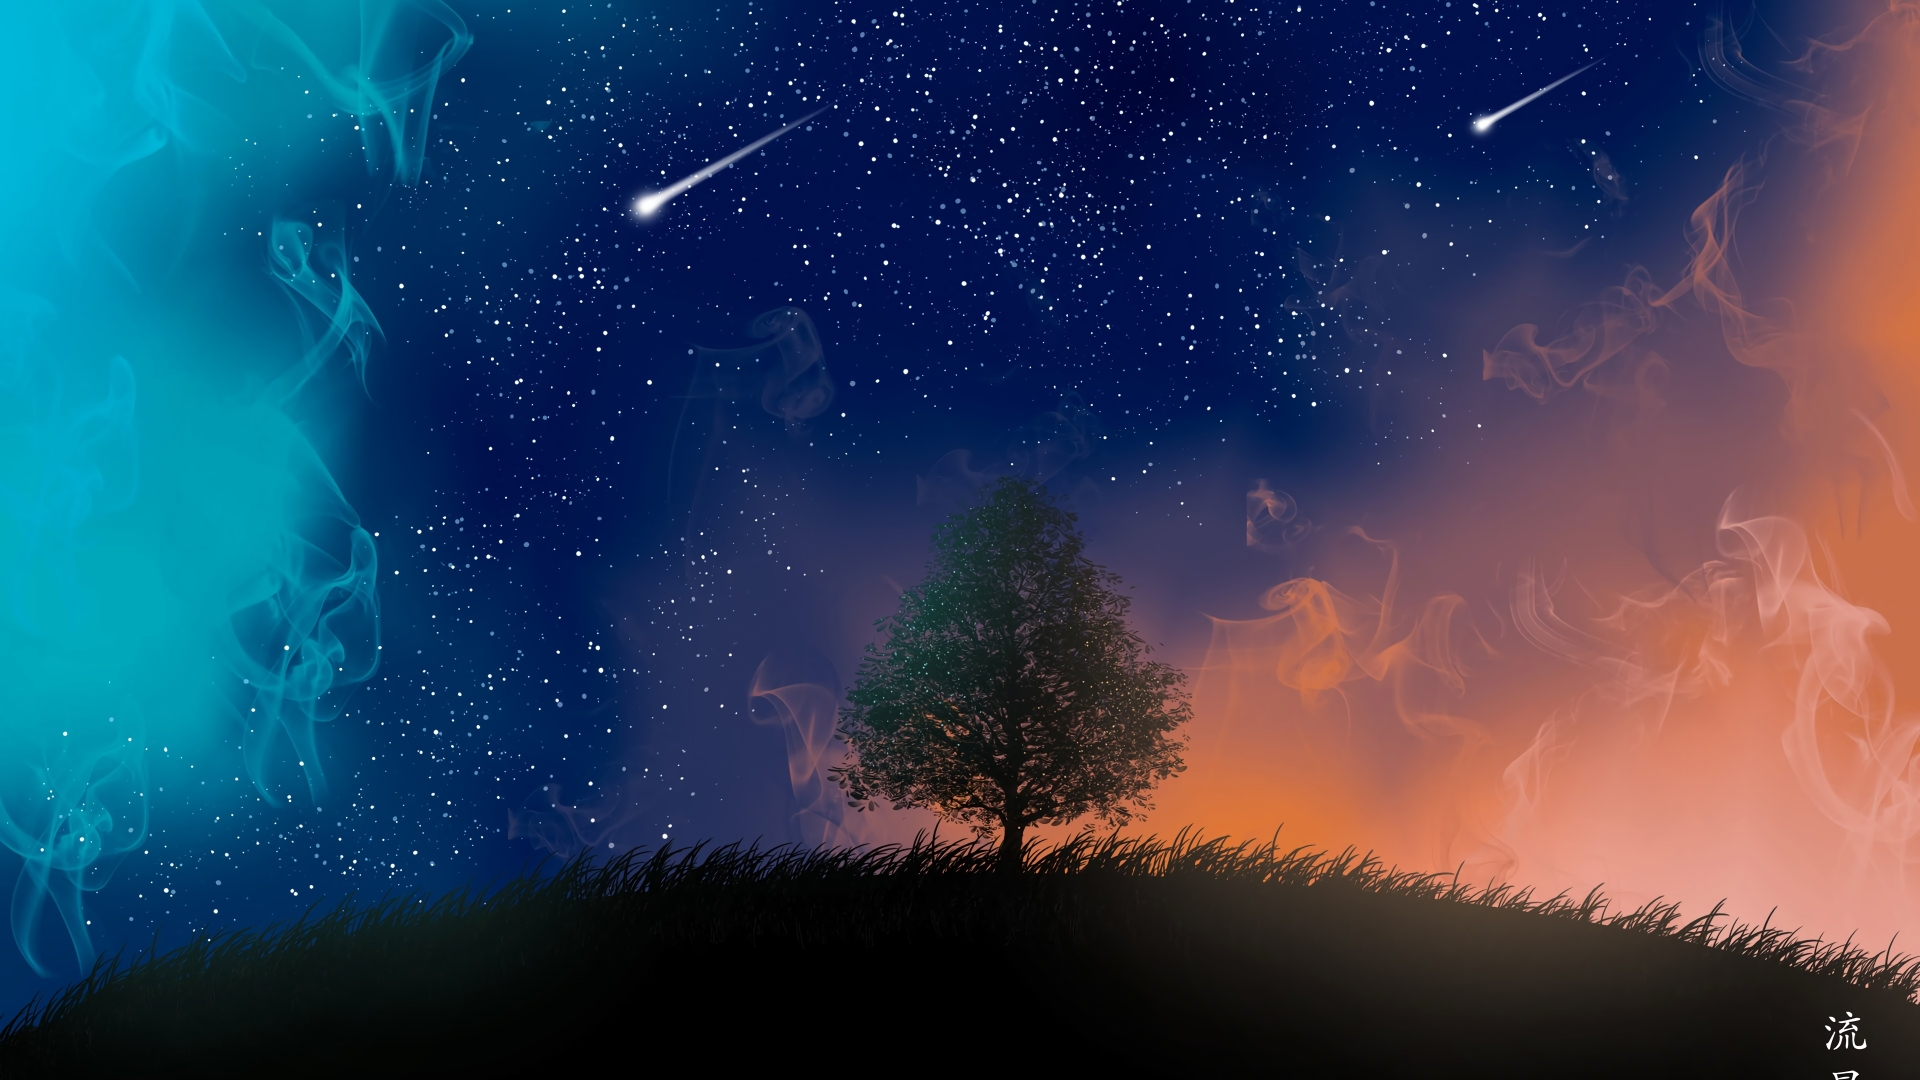 1920x1080 Tree And Shooting Stars 4k 1080p Laptop Full Hd Wallpaper Hd Artist 4k Wallpapers Images Photos And Background